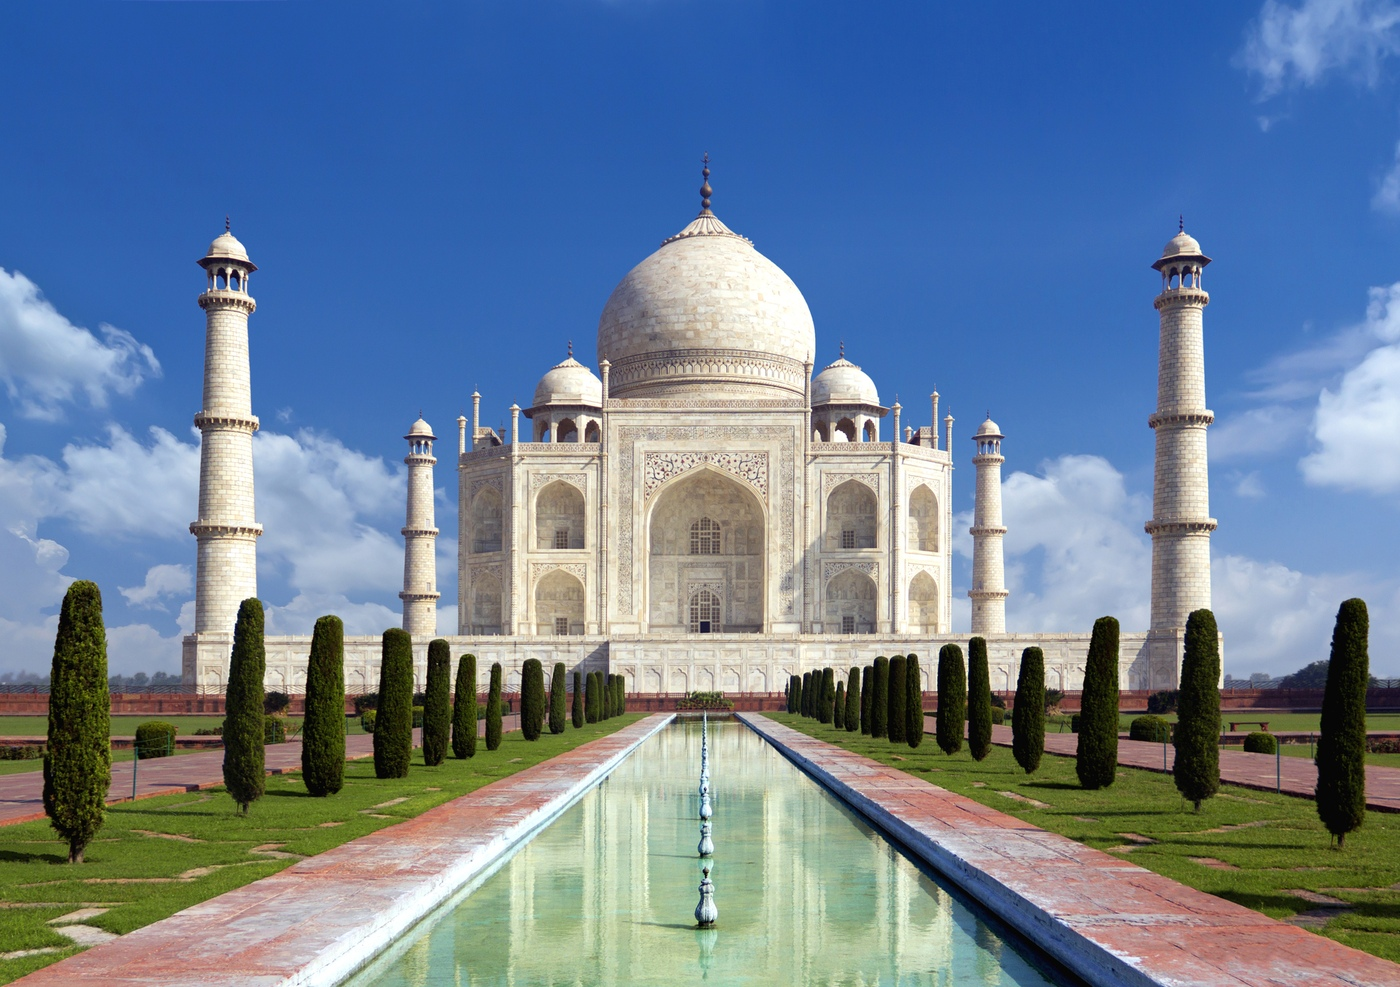 Taj Mahal 20 travel bucket list ideas to do before 40 20 Travel Bucket List Ideas To do before 40 taj mahal 260e